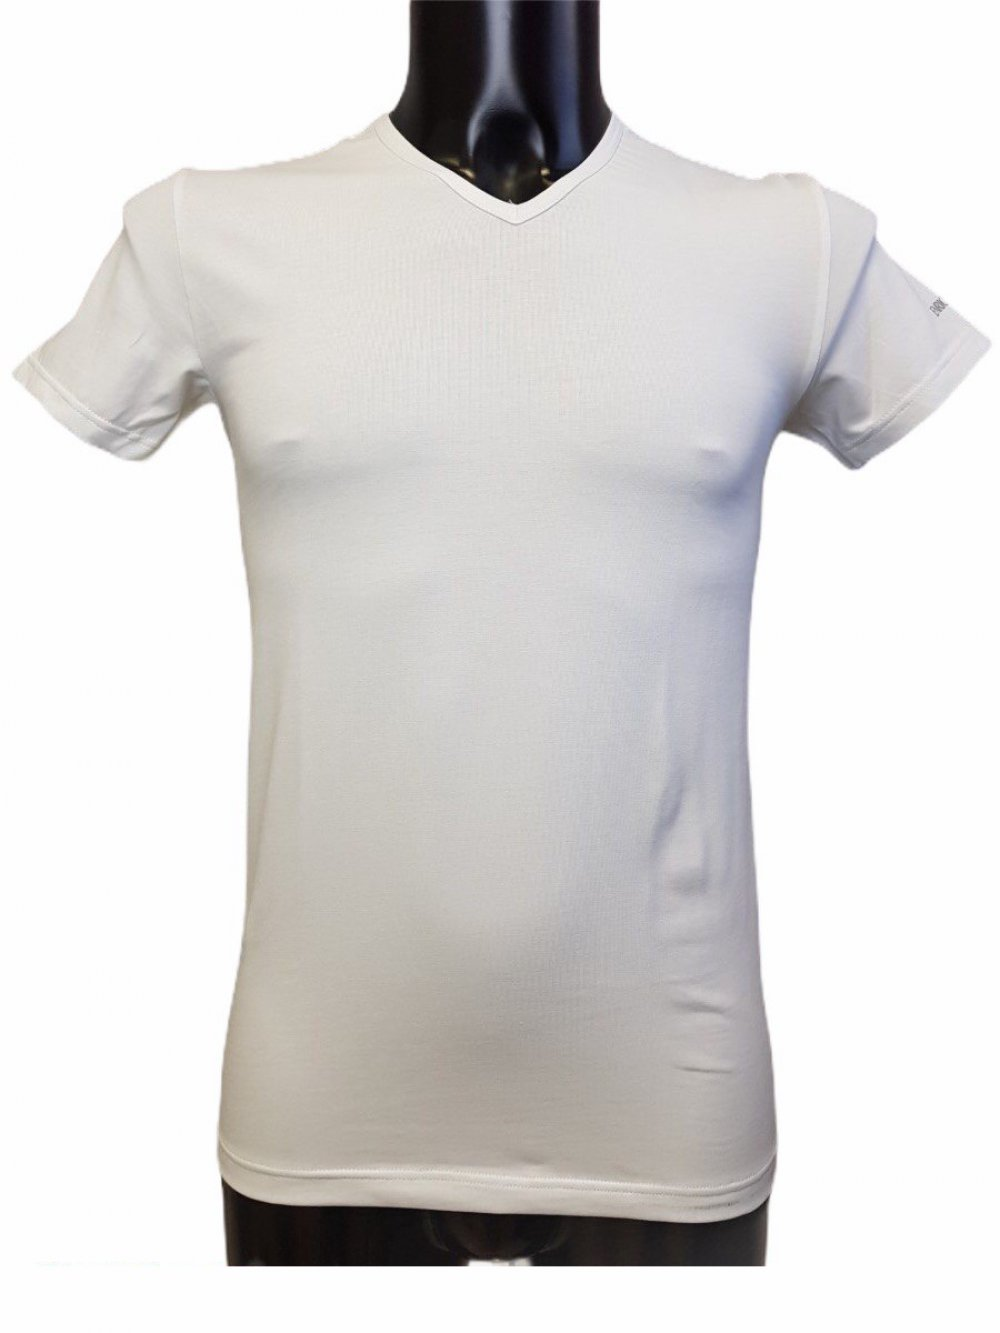 03858 53 T-SHIRT UOMO Scollo V Liabel